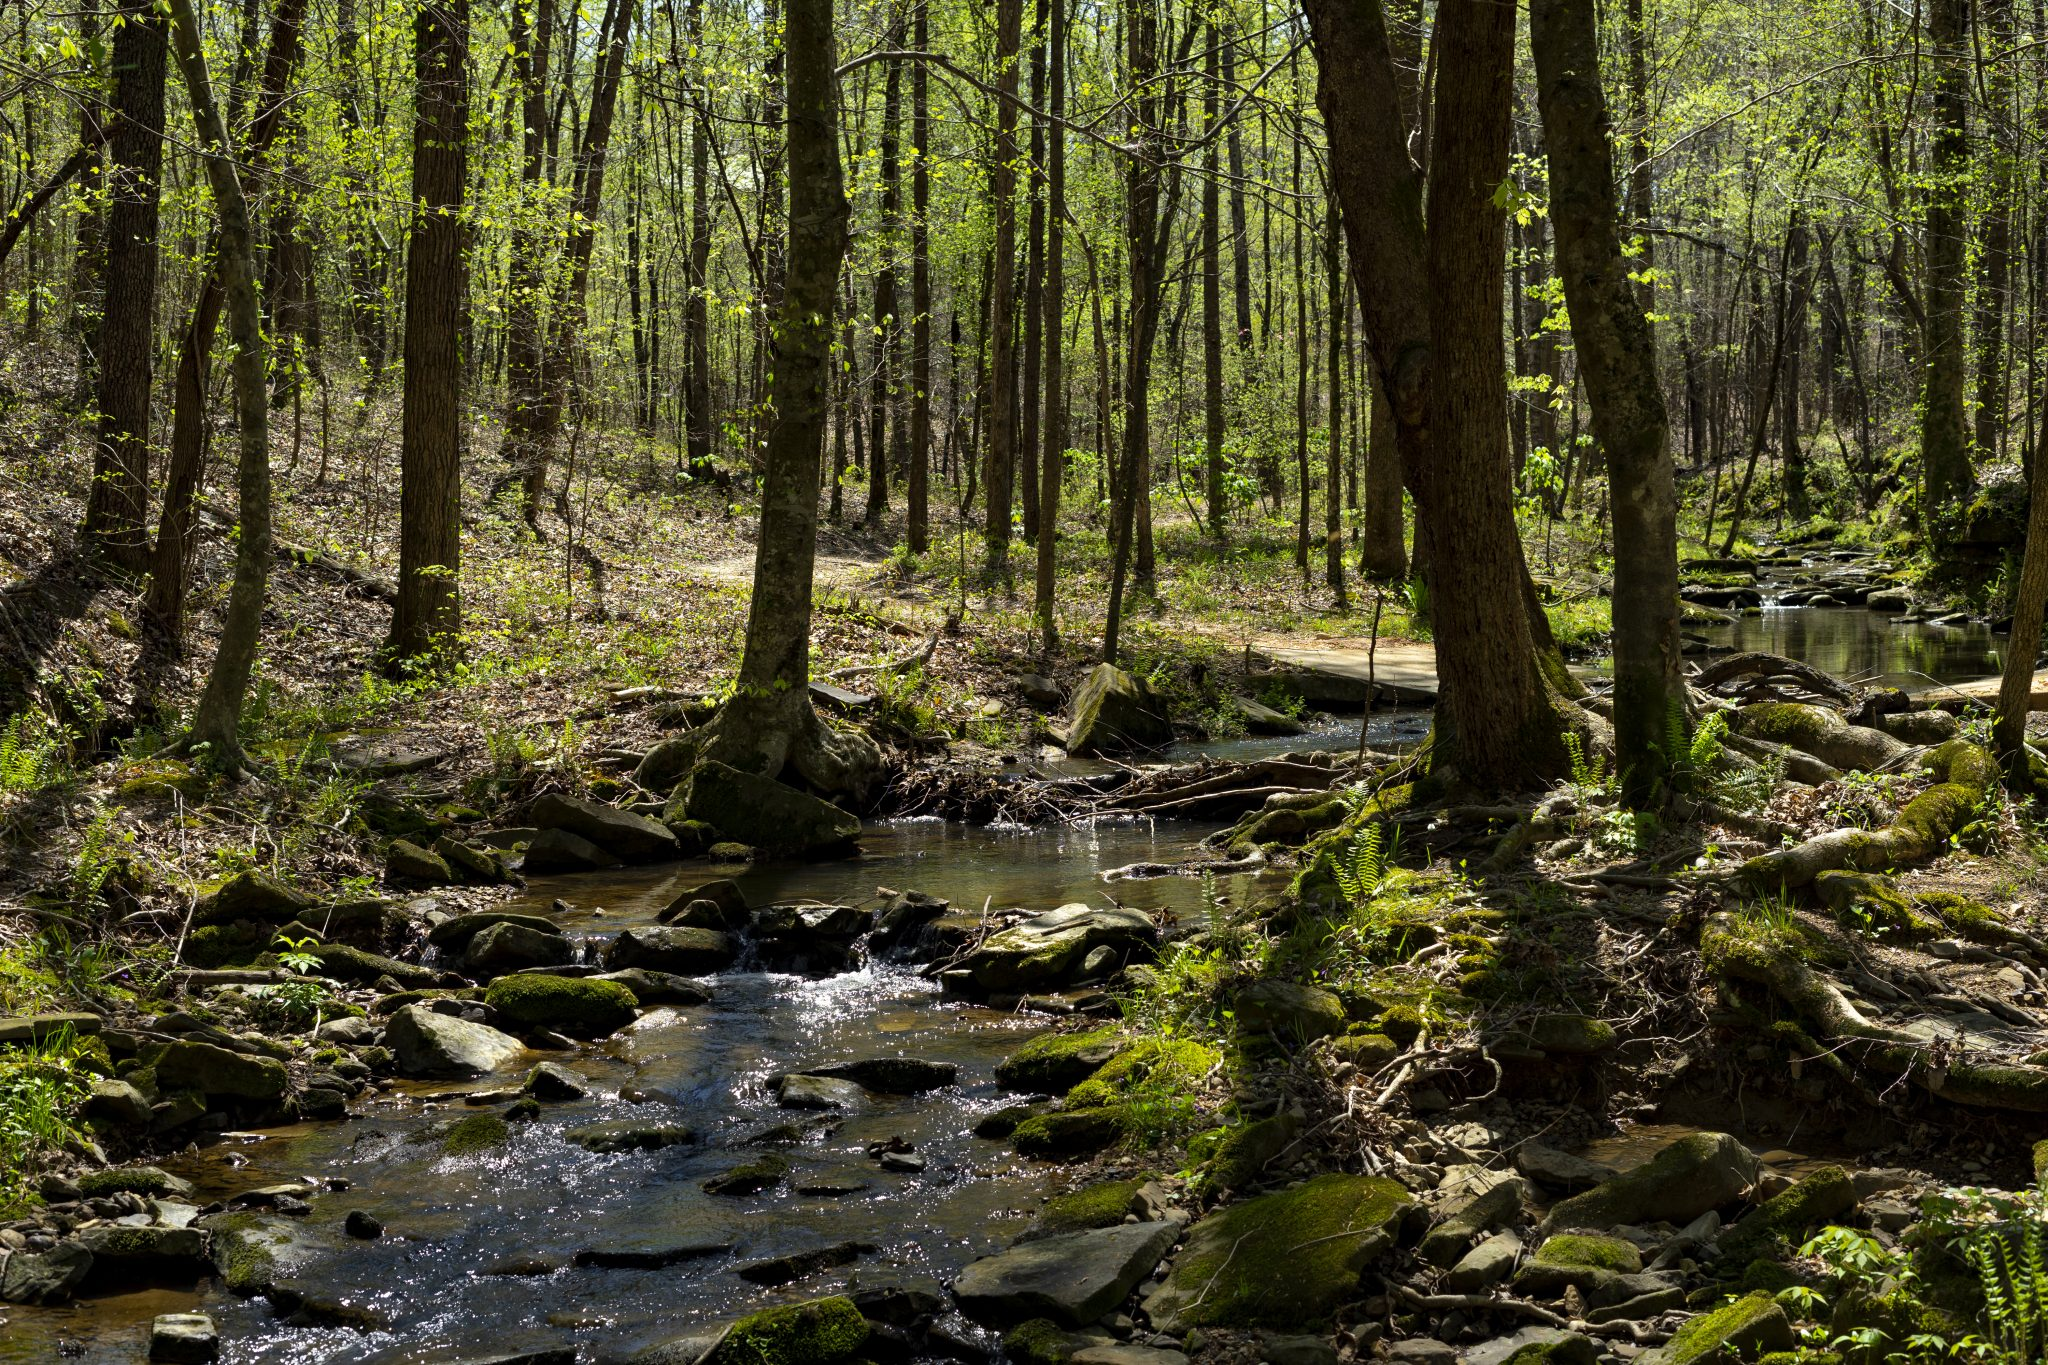 The cool water of Cane Creek flows through the lush forest of the Nature Preserve located in Northwest Alabama. The preserve is a great place to come and lose yourself in the beauty of nature.